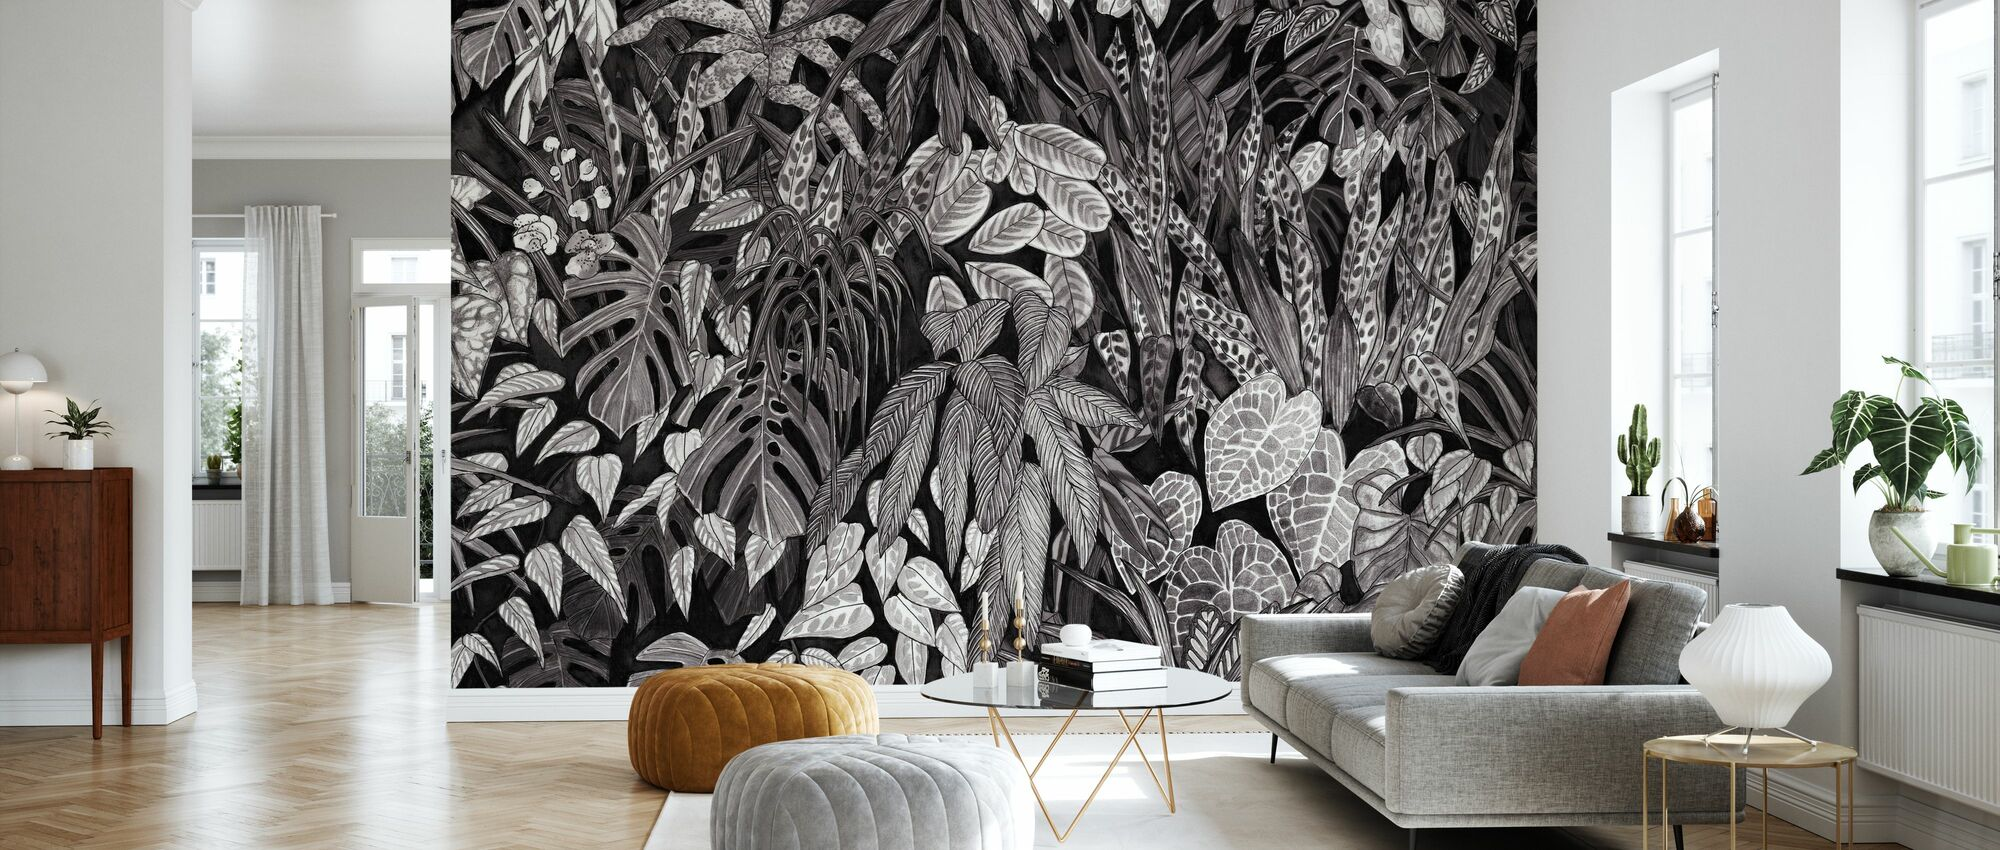 Tanglewood Forest Wall - Black - Wallpaper - Living Room